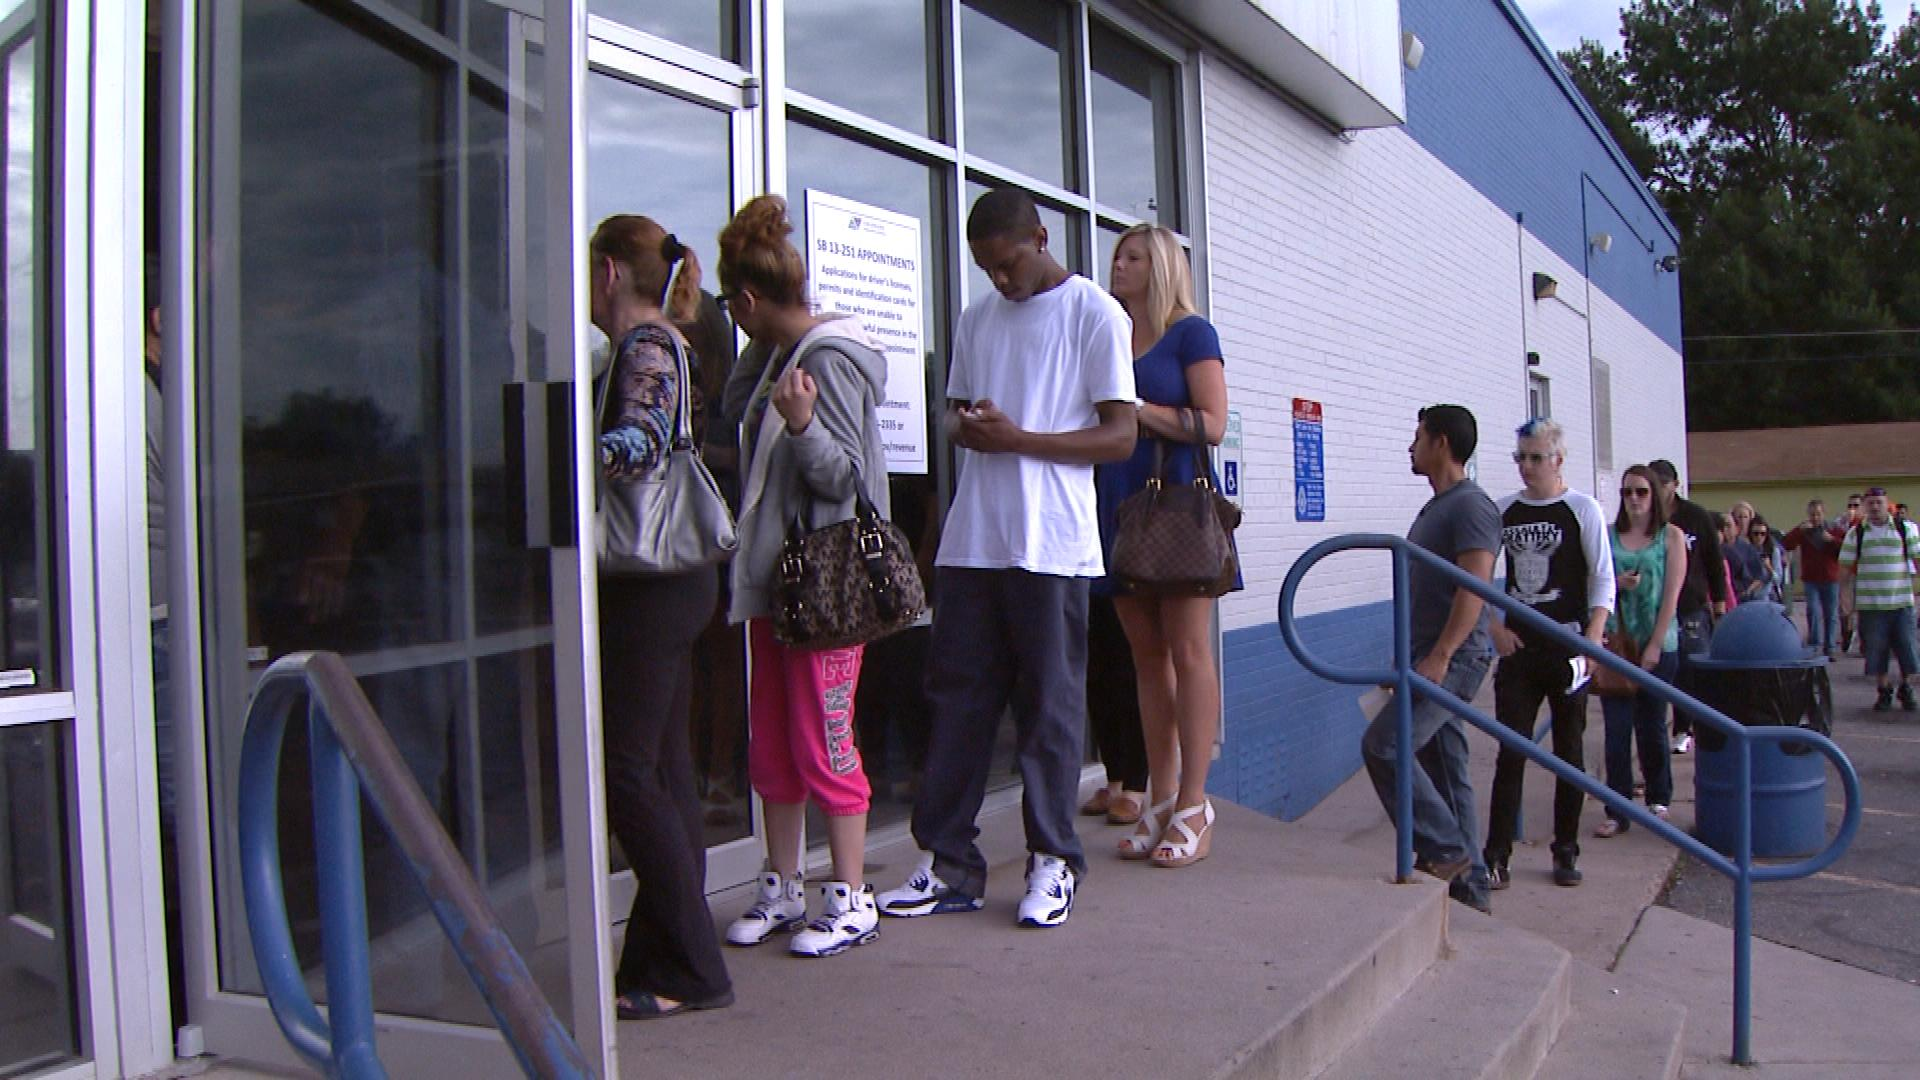 A line at the DMV office on West Mississippi Avenue in Denver (credit: CBS)